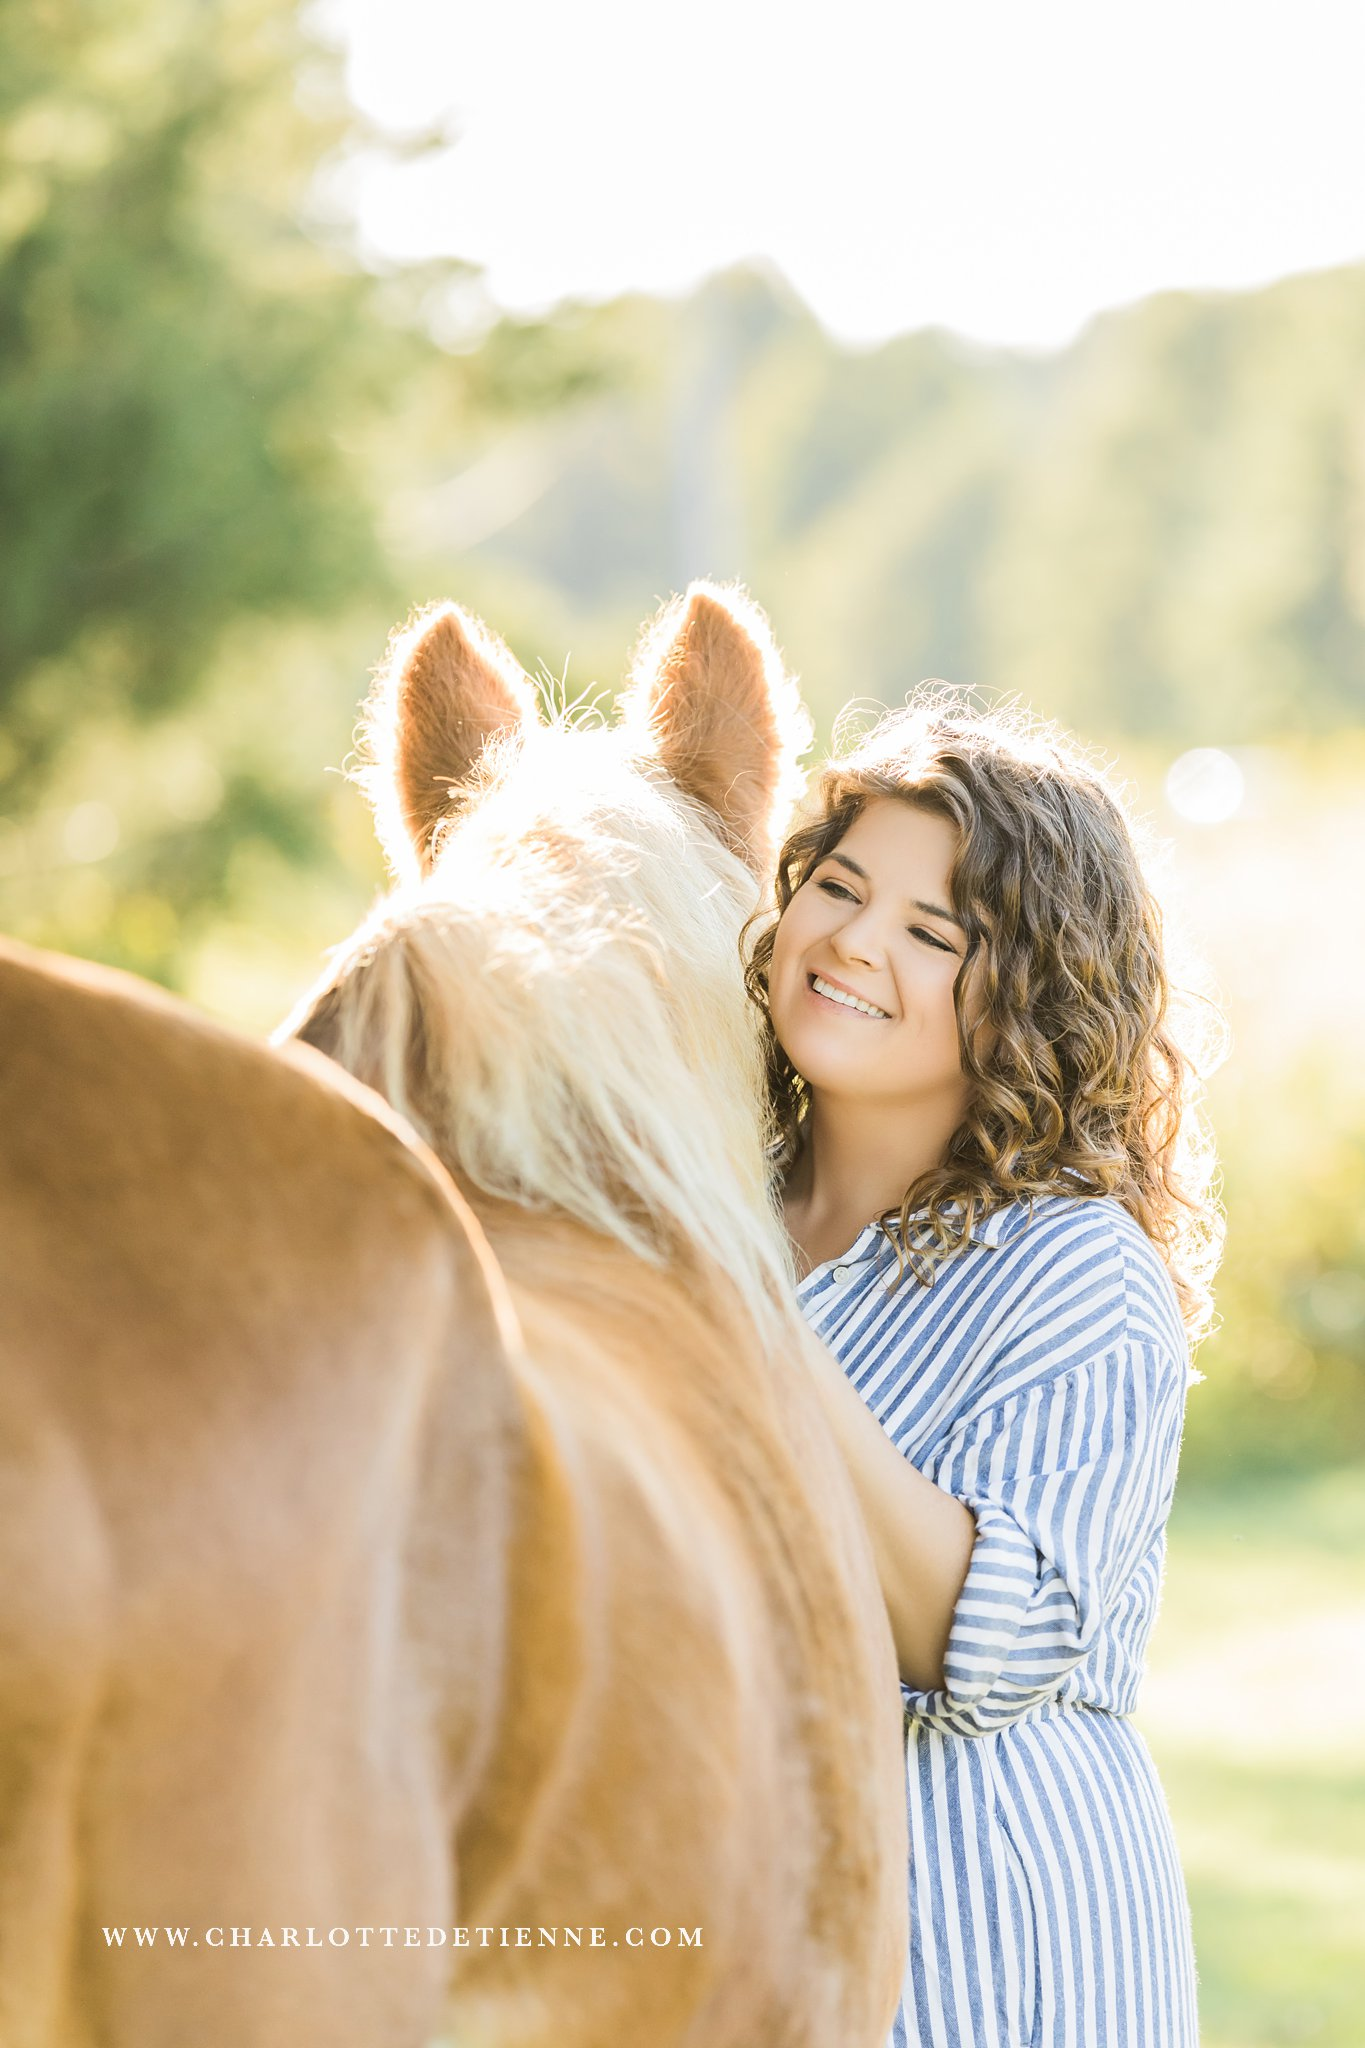 Courtney Bryson of CM Bryson gets on the other side of the lens for her own equine photography session with her senior horse.